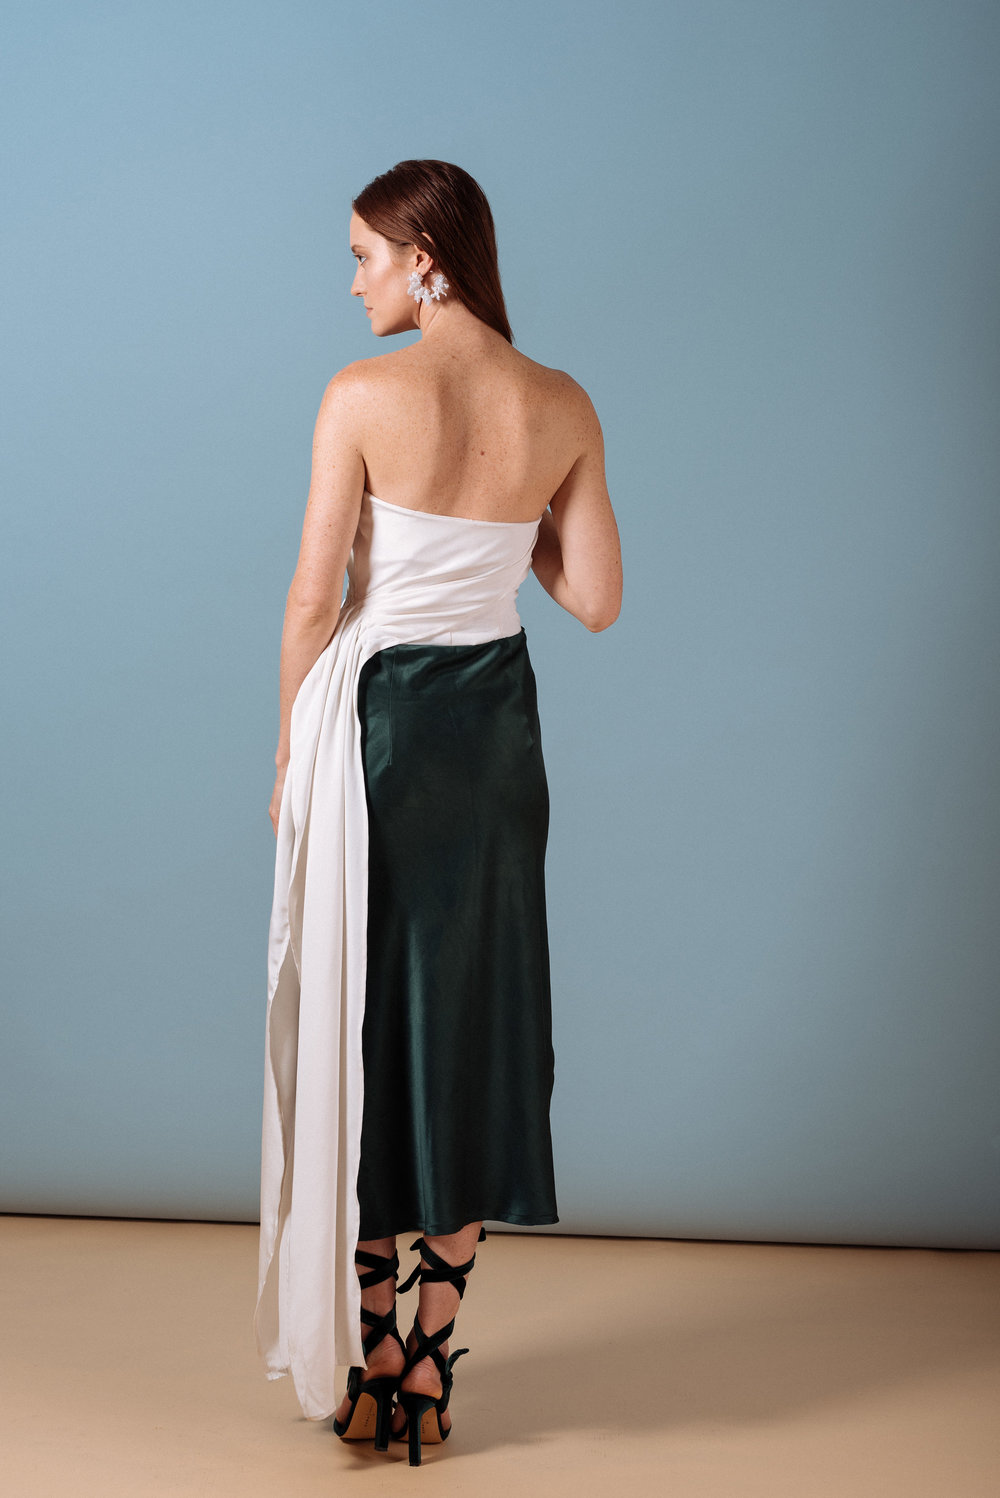 Look 8: #405 Gulabi Waterfall Draped Top in Cream, #307 Emma Mid-length Bias Cut Skirt in Emerald